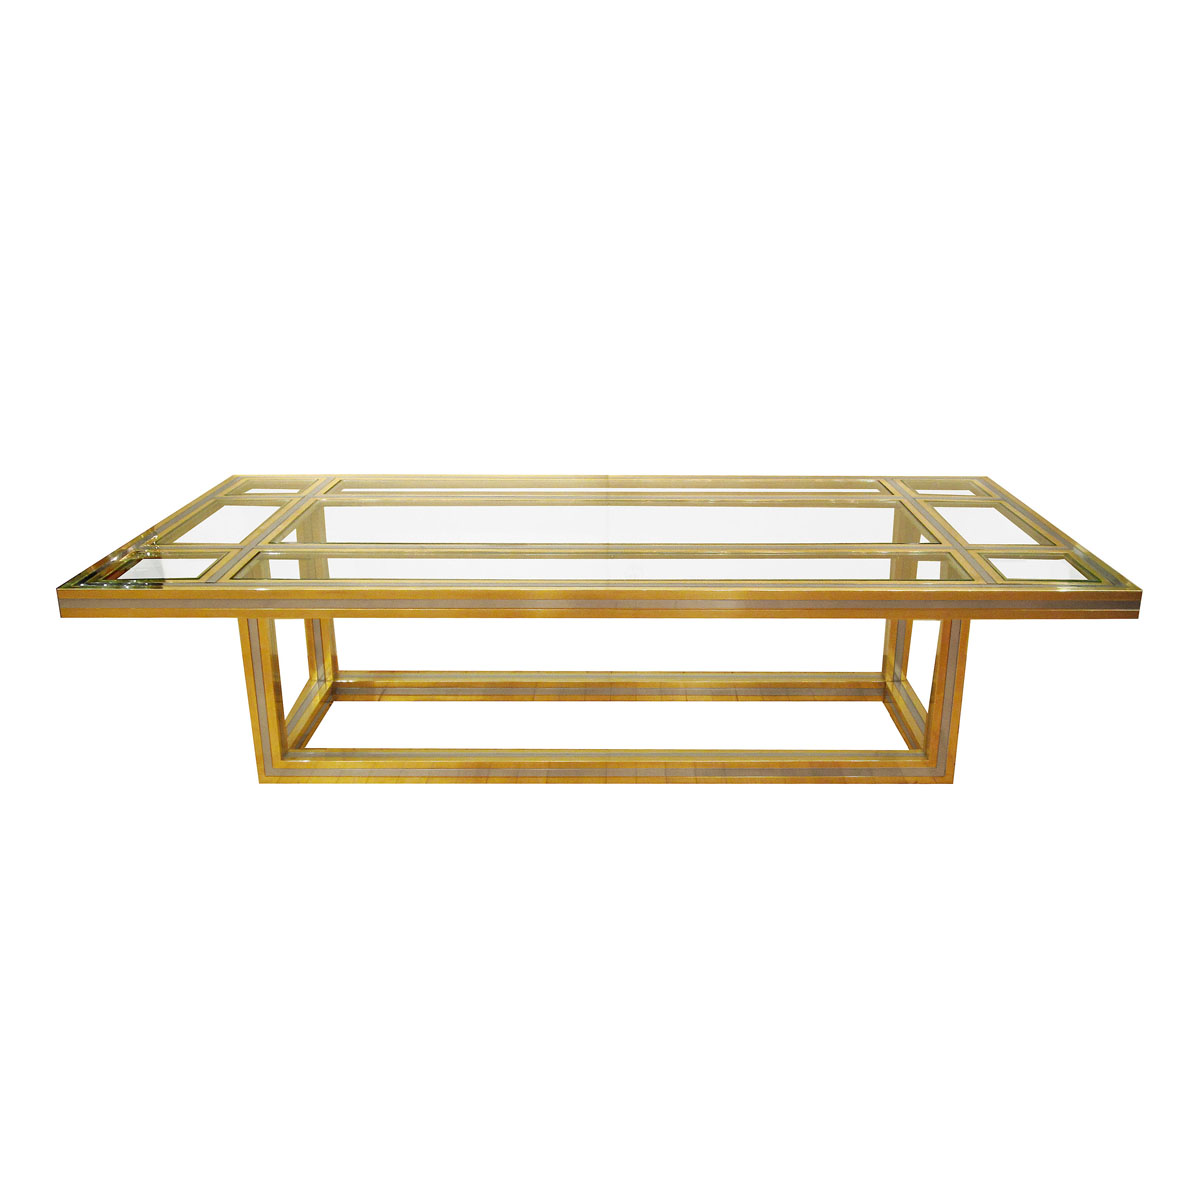 Brass and stainless steel coffee table with glass insets coffee tables john salibello Metal and glass coffee table